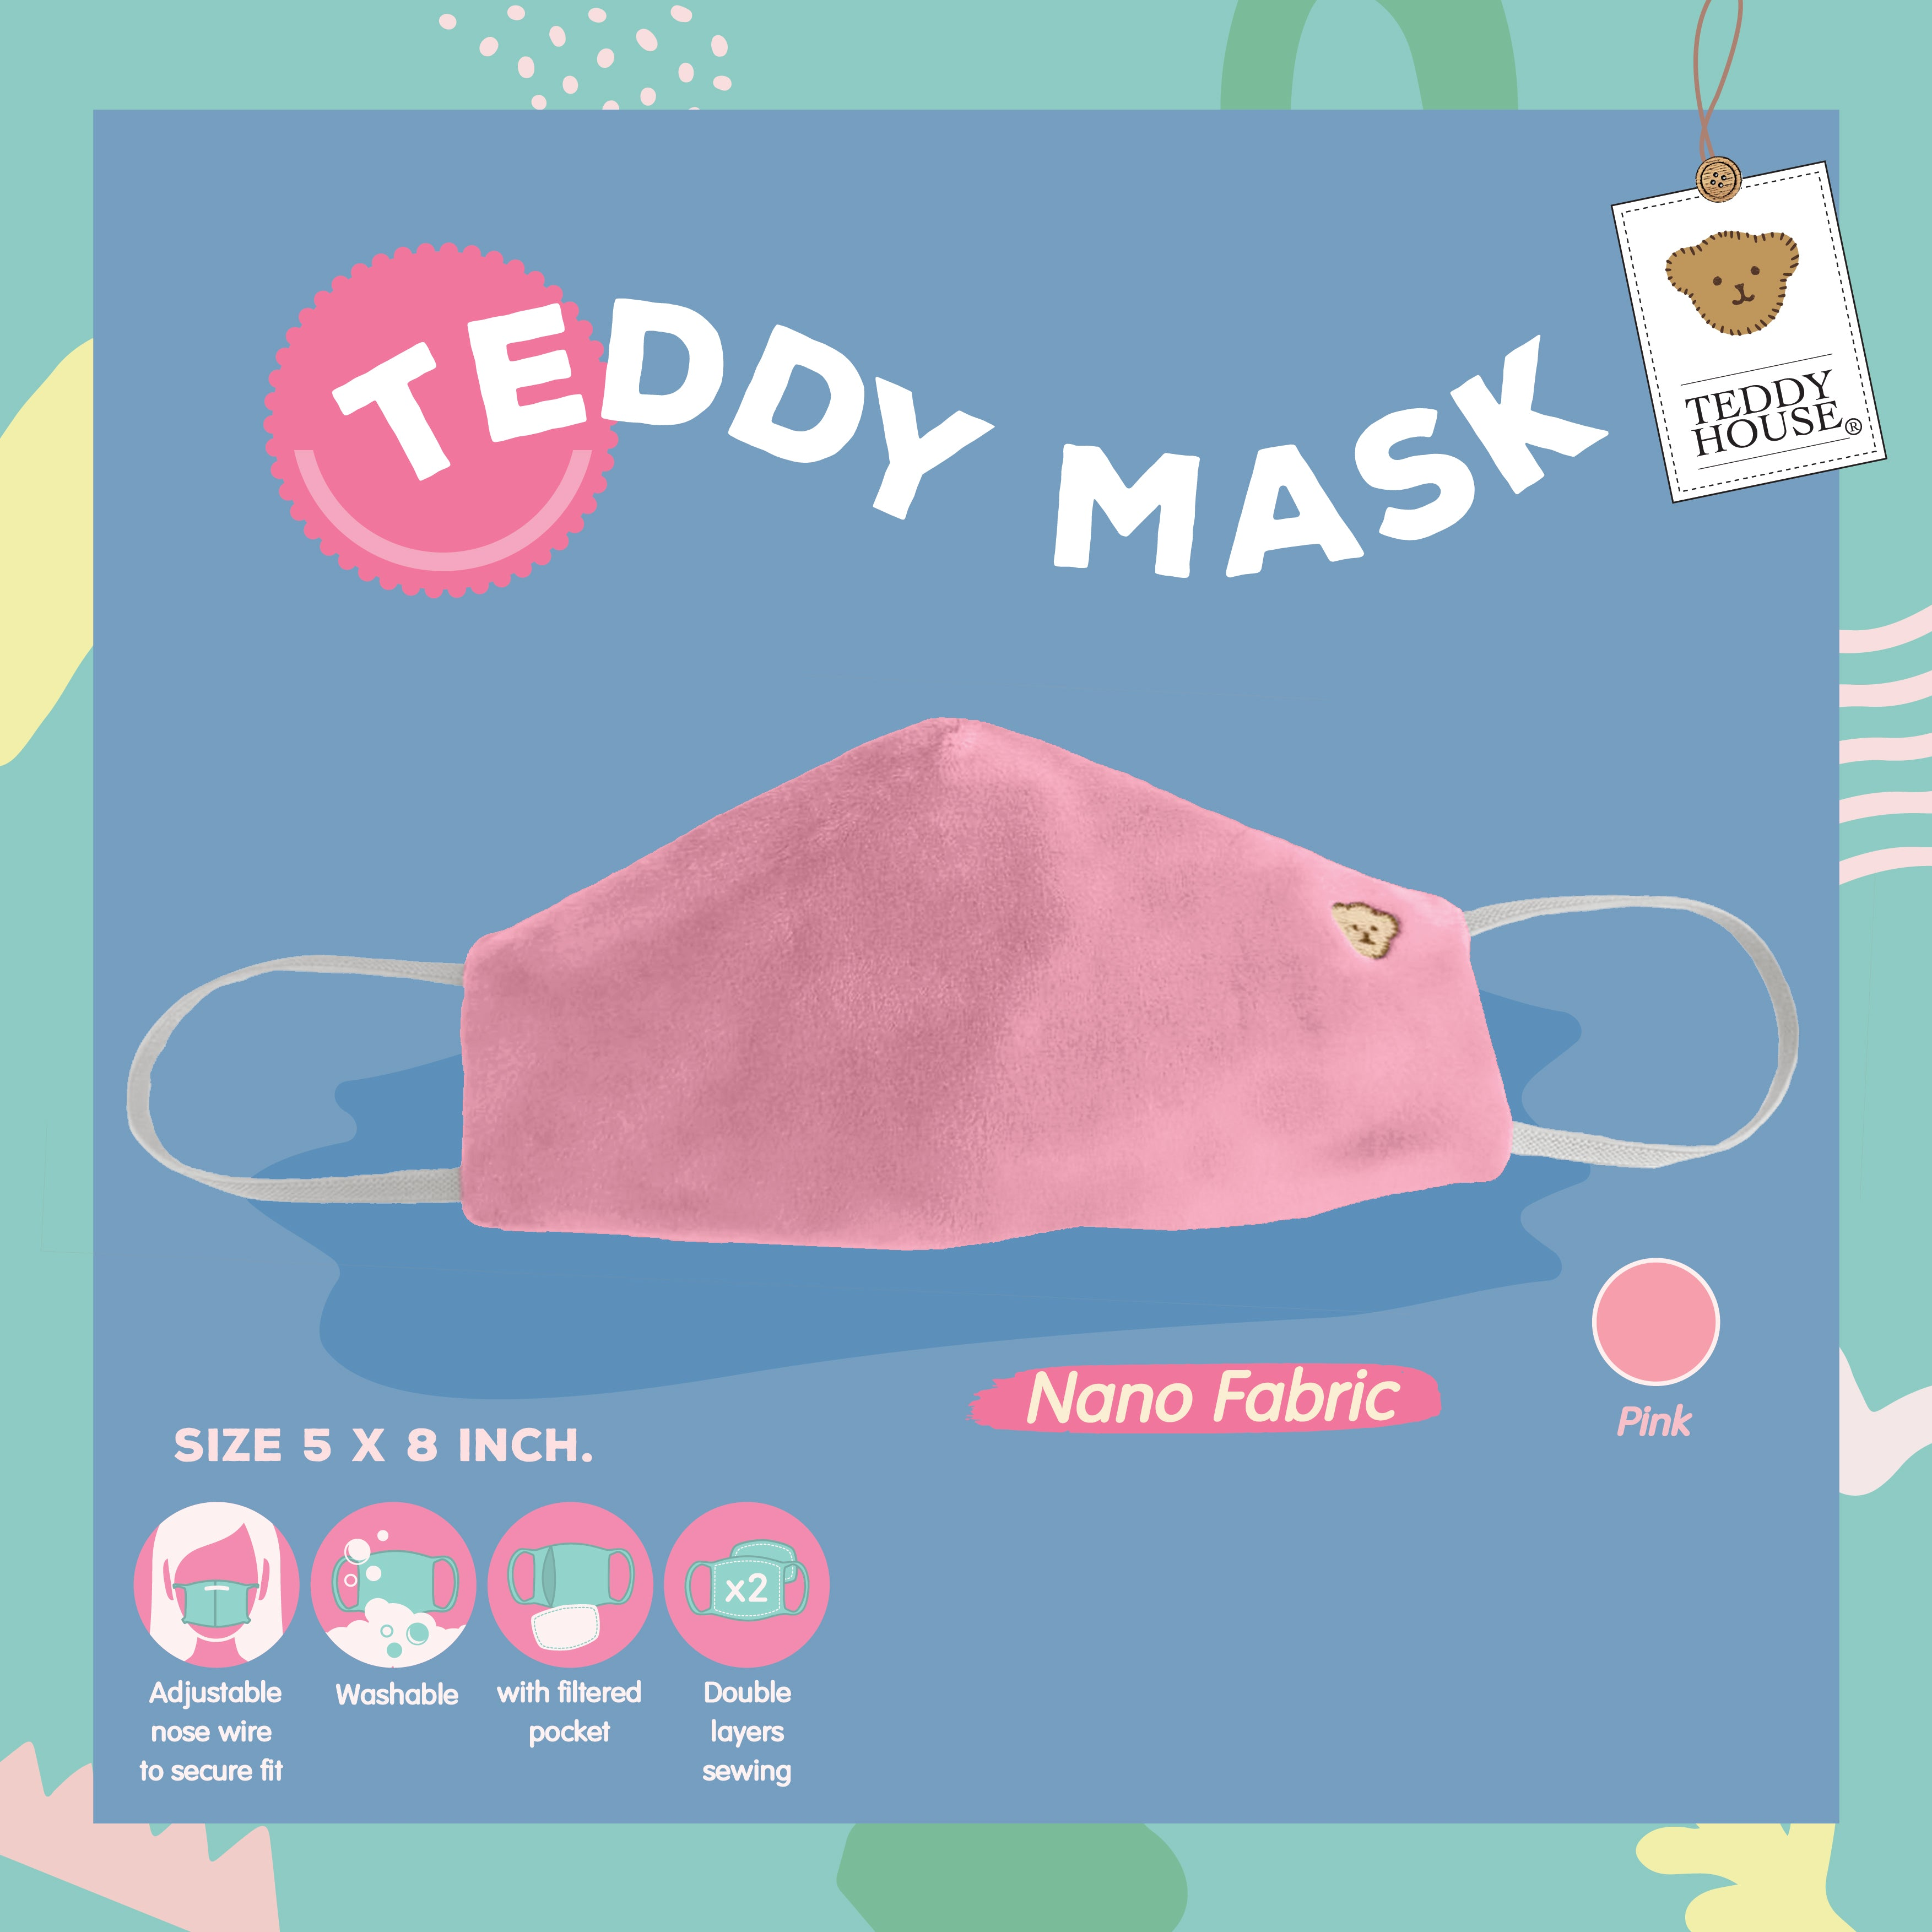 FABRIC MASK - NANO FOR ADULT (GRAY, BEIGE, PINK, CREAM)